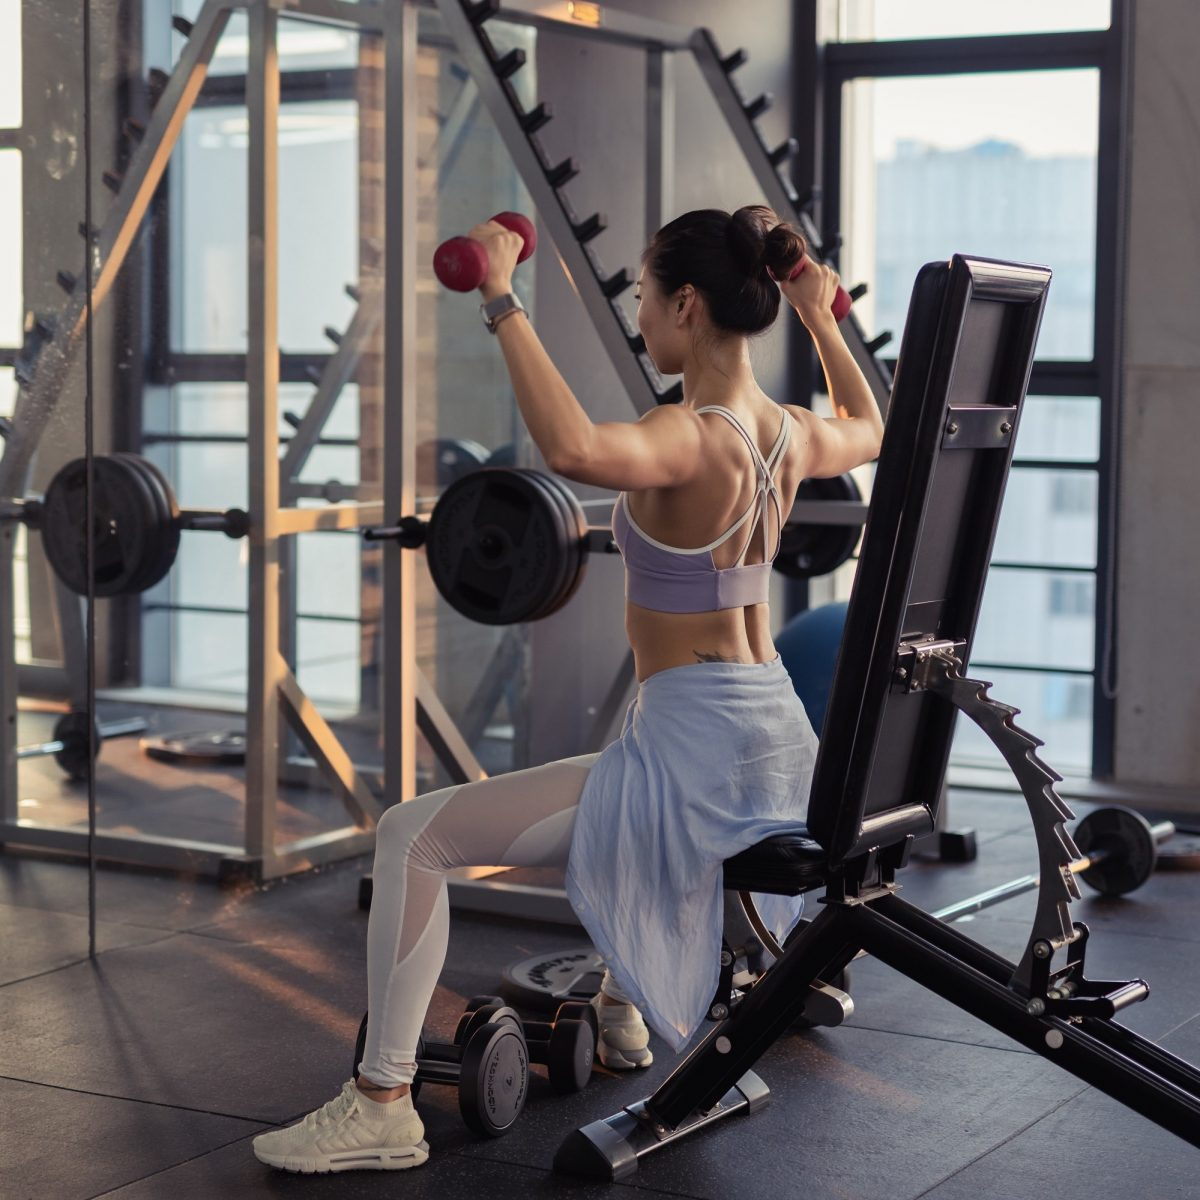 photo-of-woman-raising-dumbbells-2475878-1-1.jpg